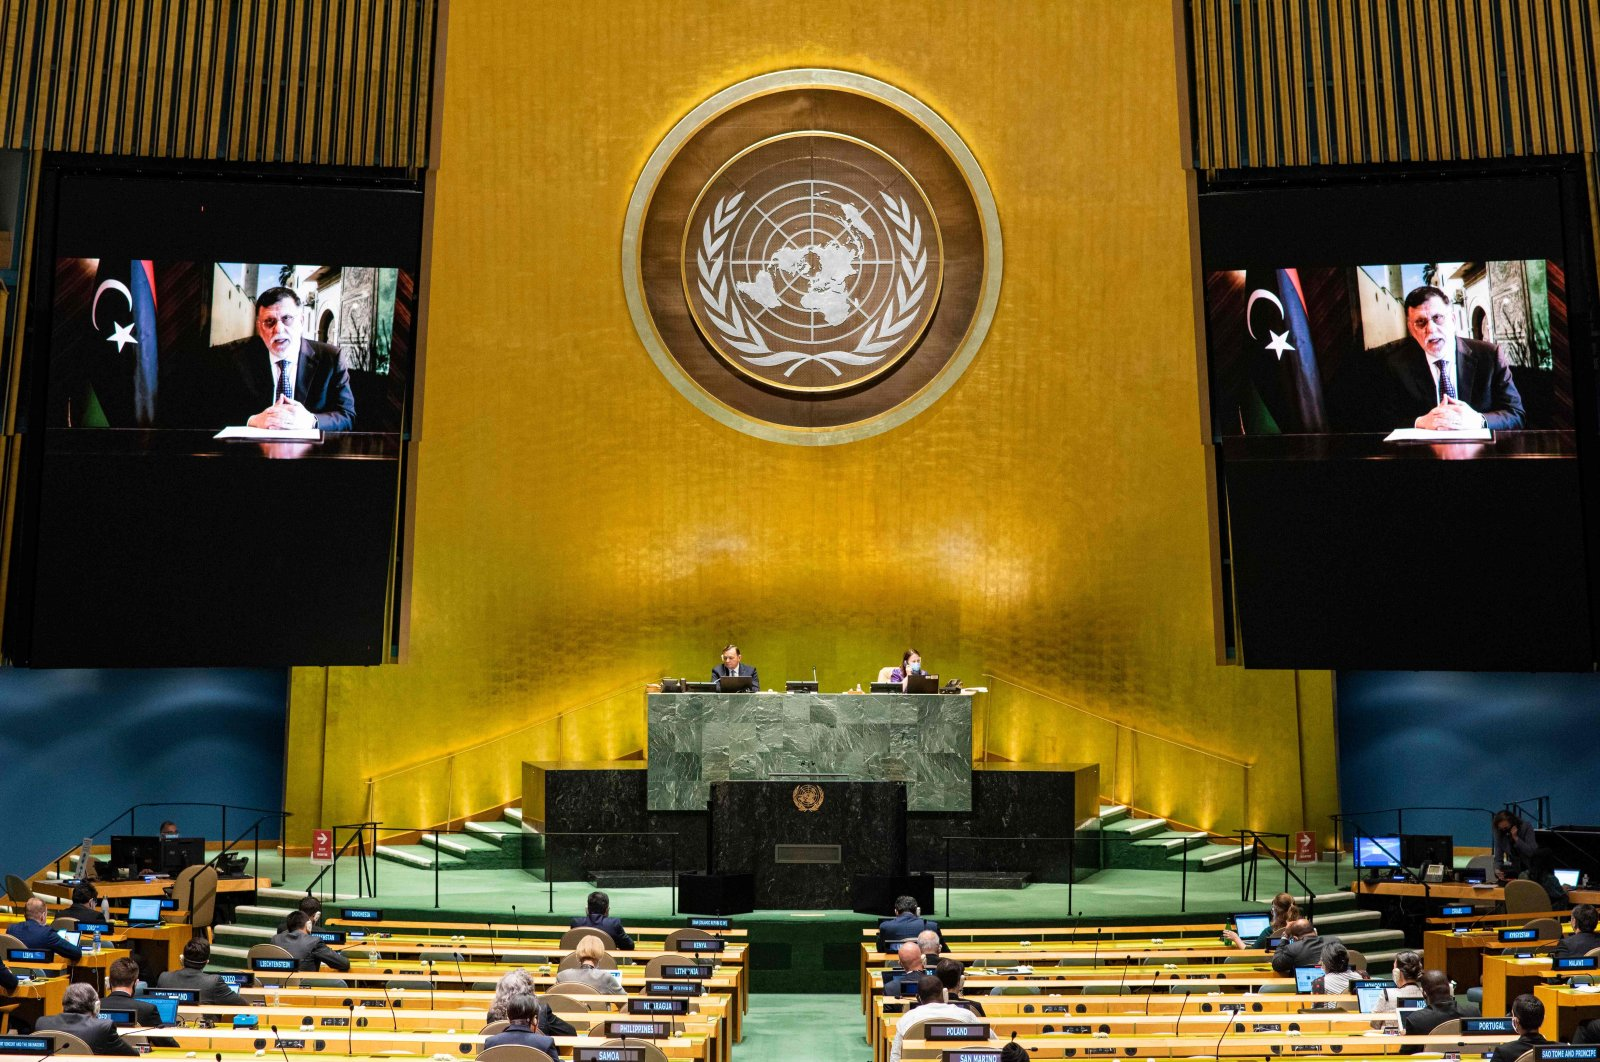 Libya's Prime Minister Fayez Sarraj virtually addresses the general debate of the 75th session of the United Nations General Assembly in New York, Sept. 24, 2020. (AFP Photo)